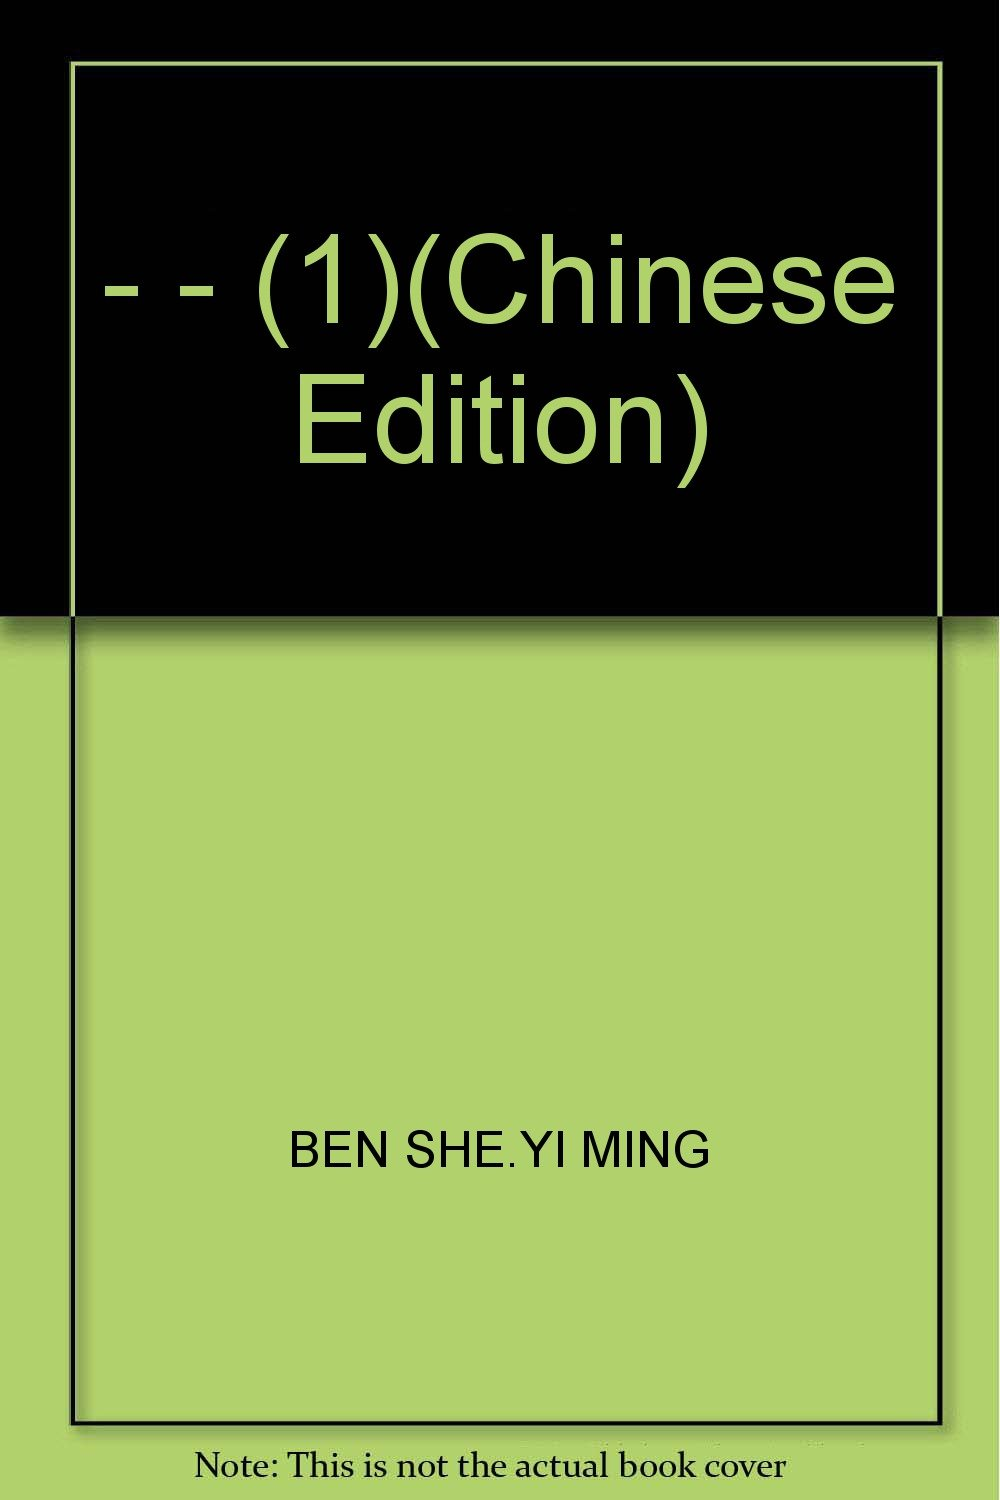 - - (1)(Chinese Edition) pdf epub